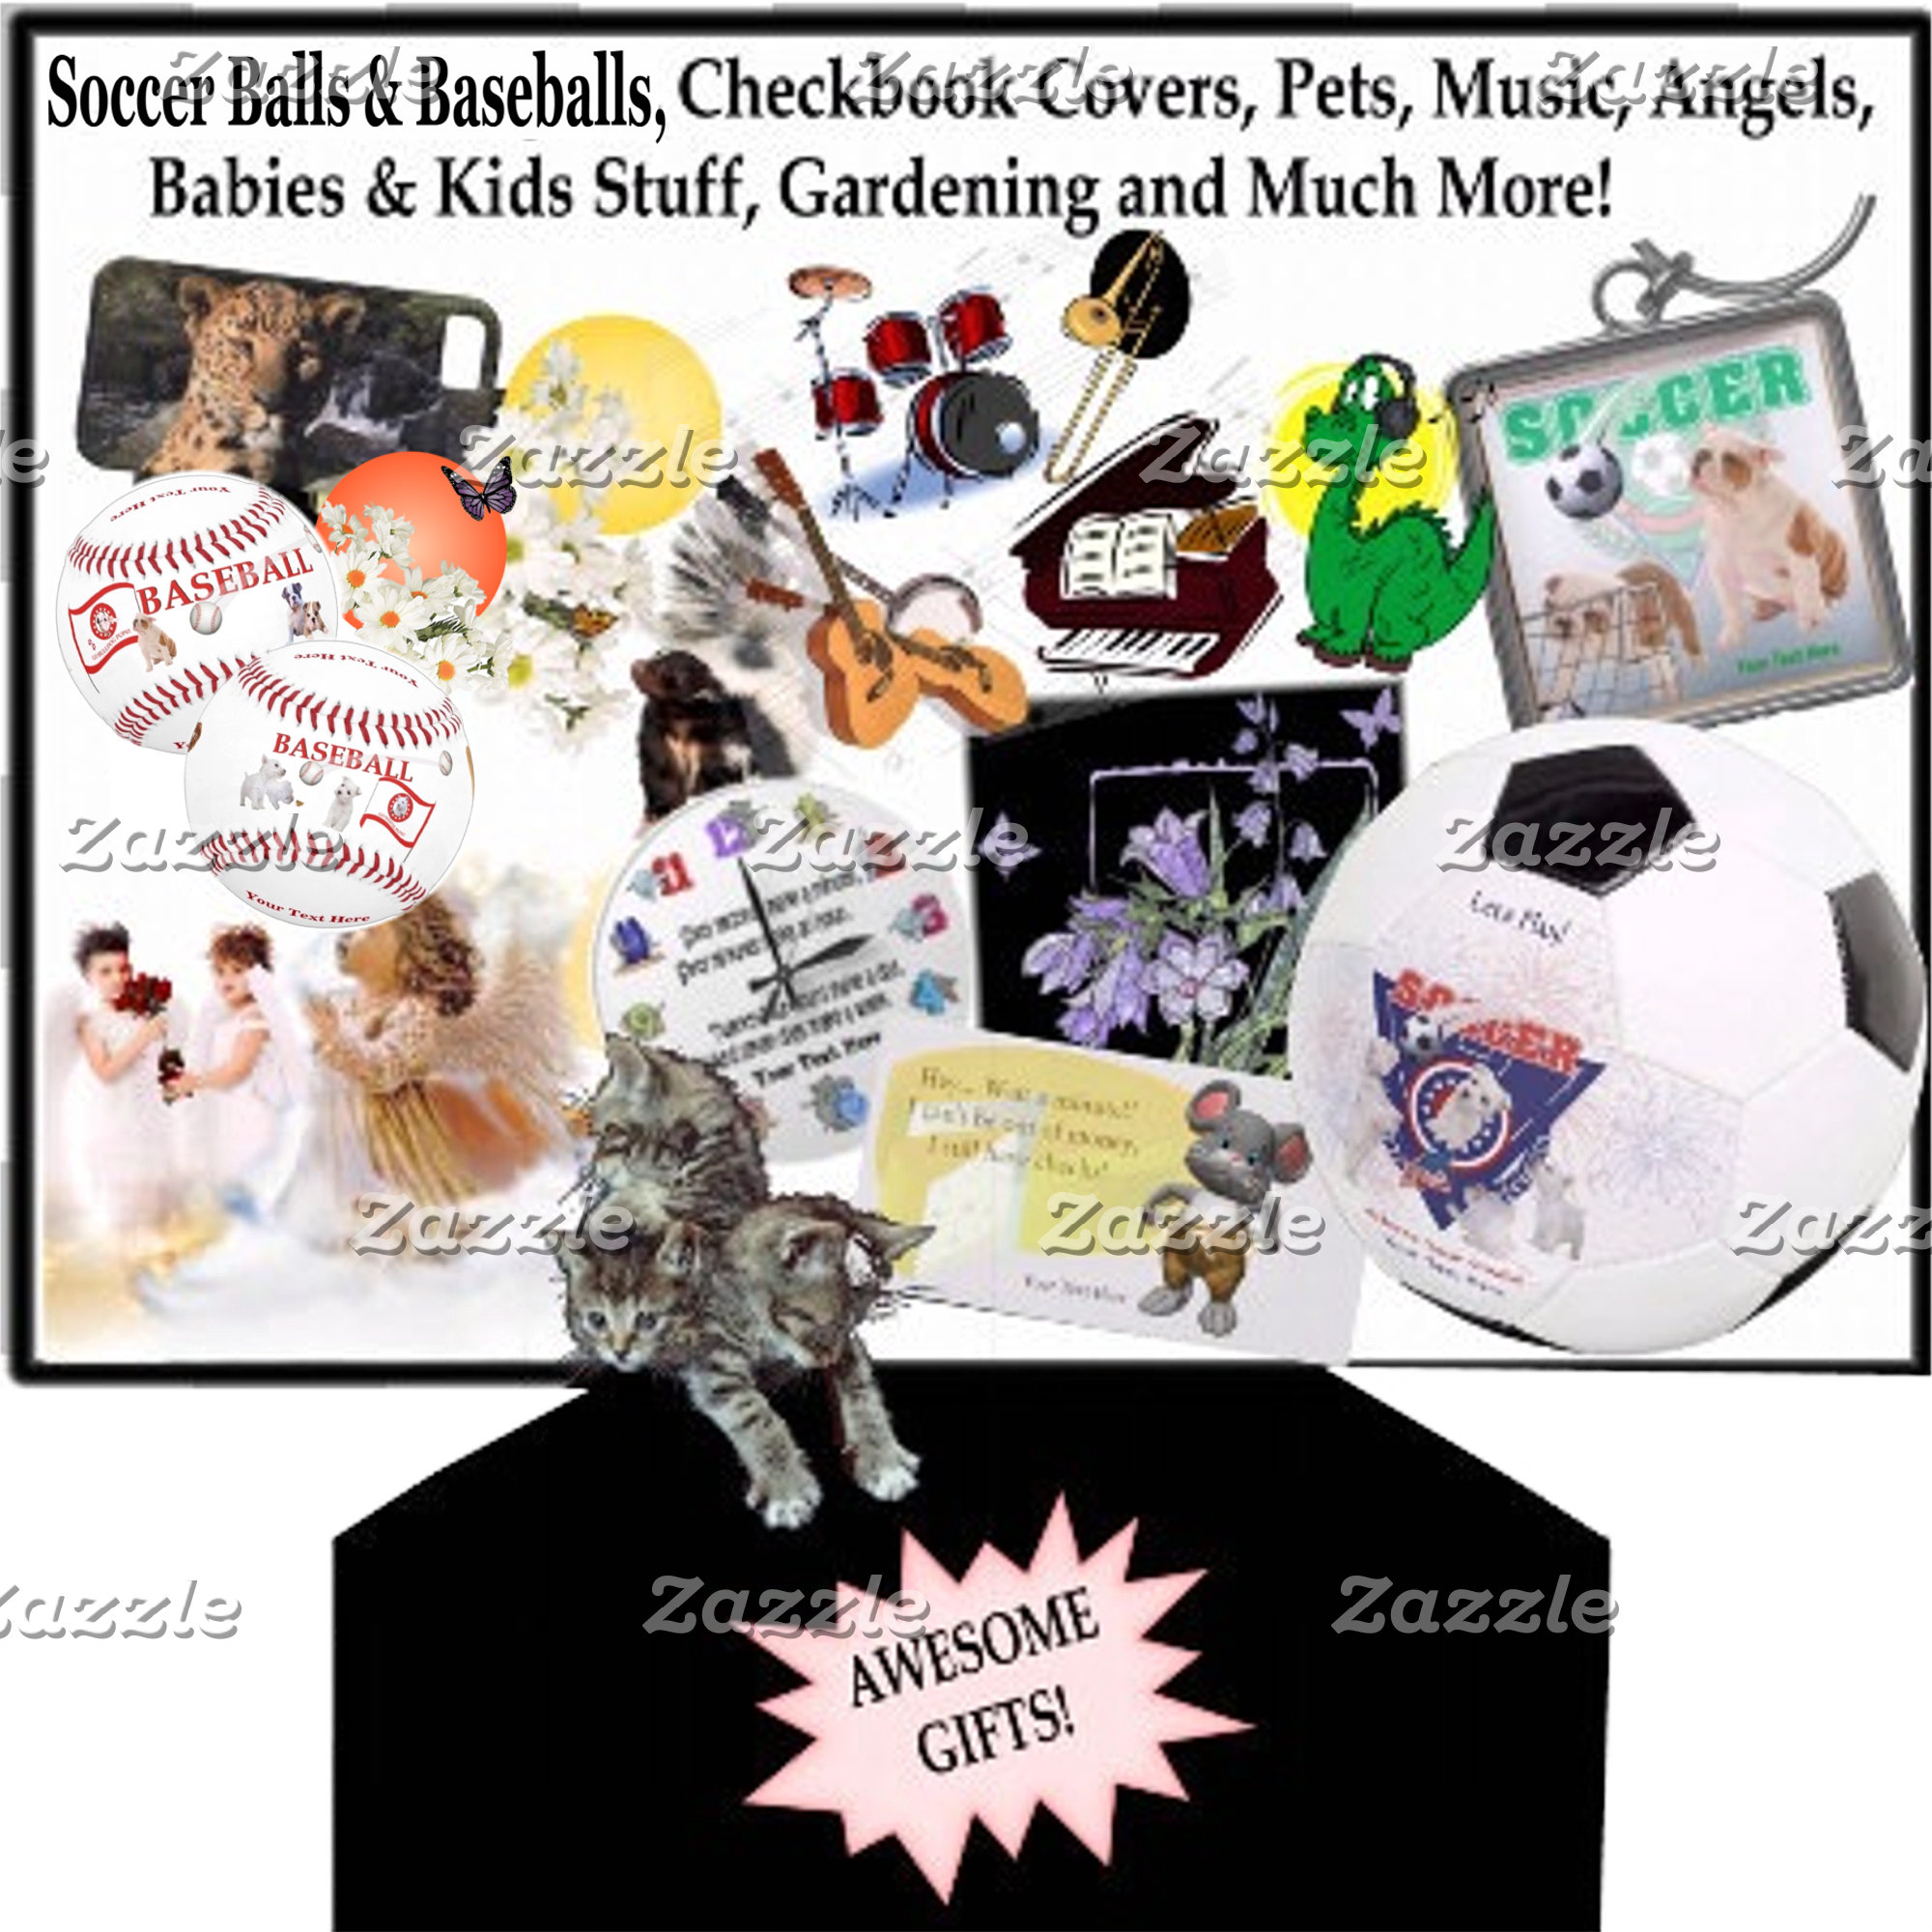 Awesome Gifts Sports, Pets, Checkbook Cover, Music